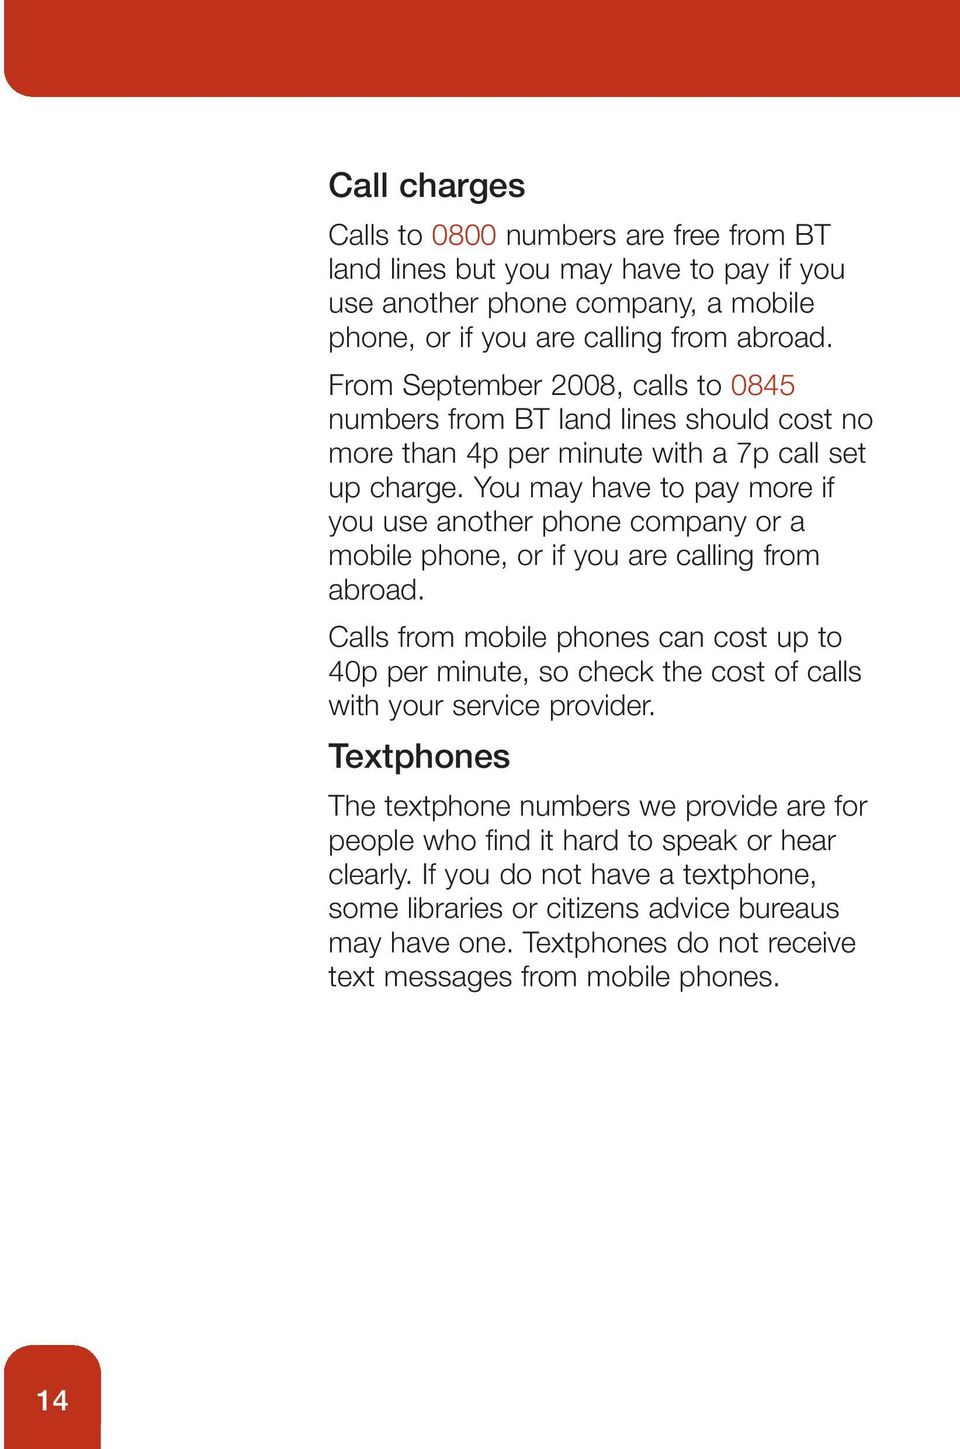 You may have to pay more if you use another phone company or a mobile phone, or if you are calling from abroad.